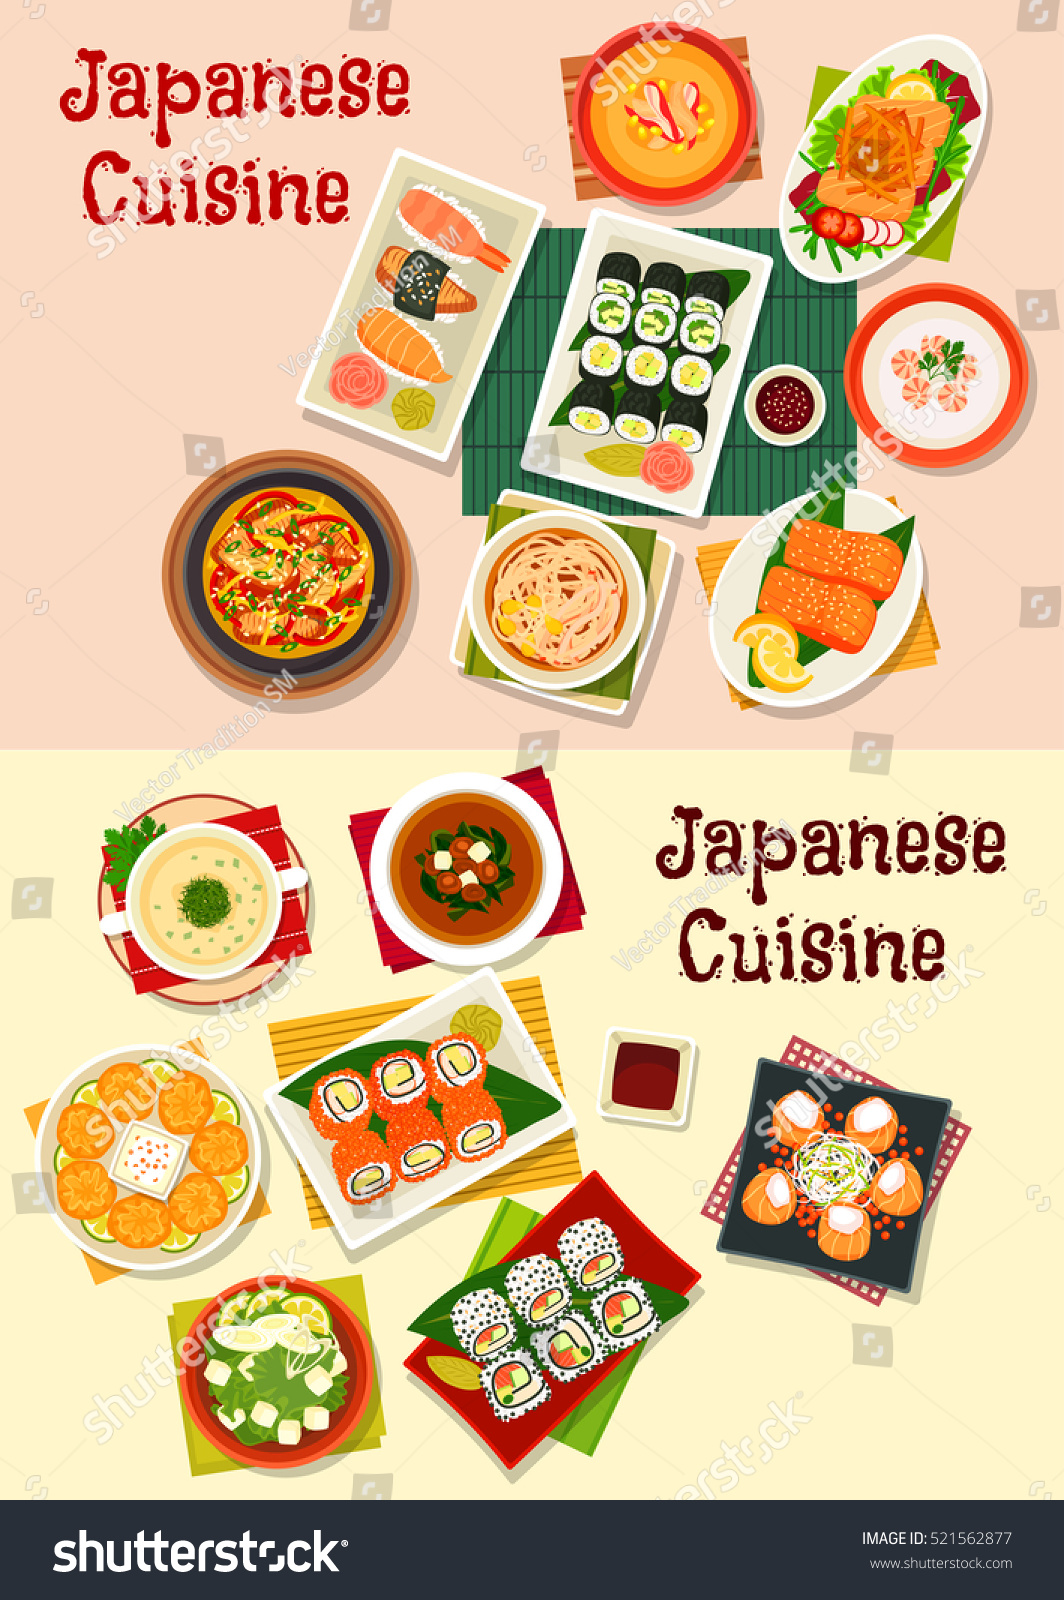 Japanese cuisine dishes icon served grilled stock vector 521562877 japanese cuisine dishes icon served with grilled fish salmon roll and salad seafood biocorpaavc Gallery